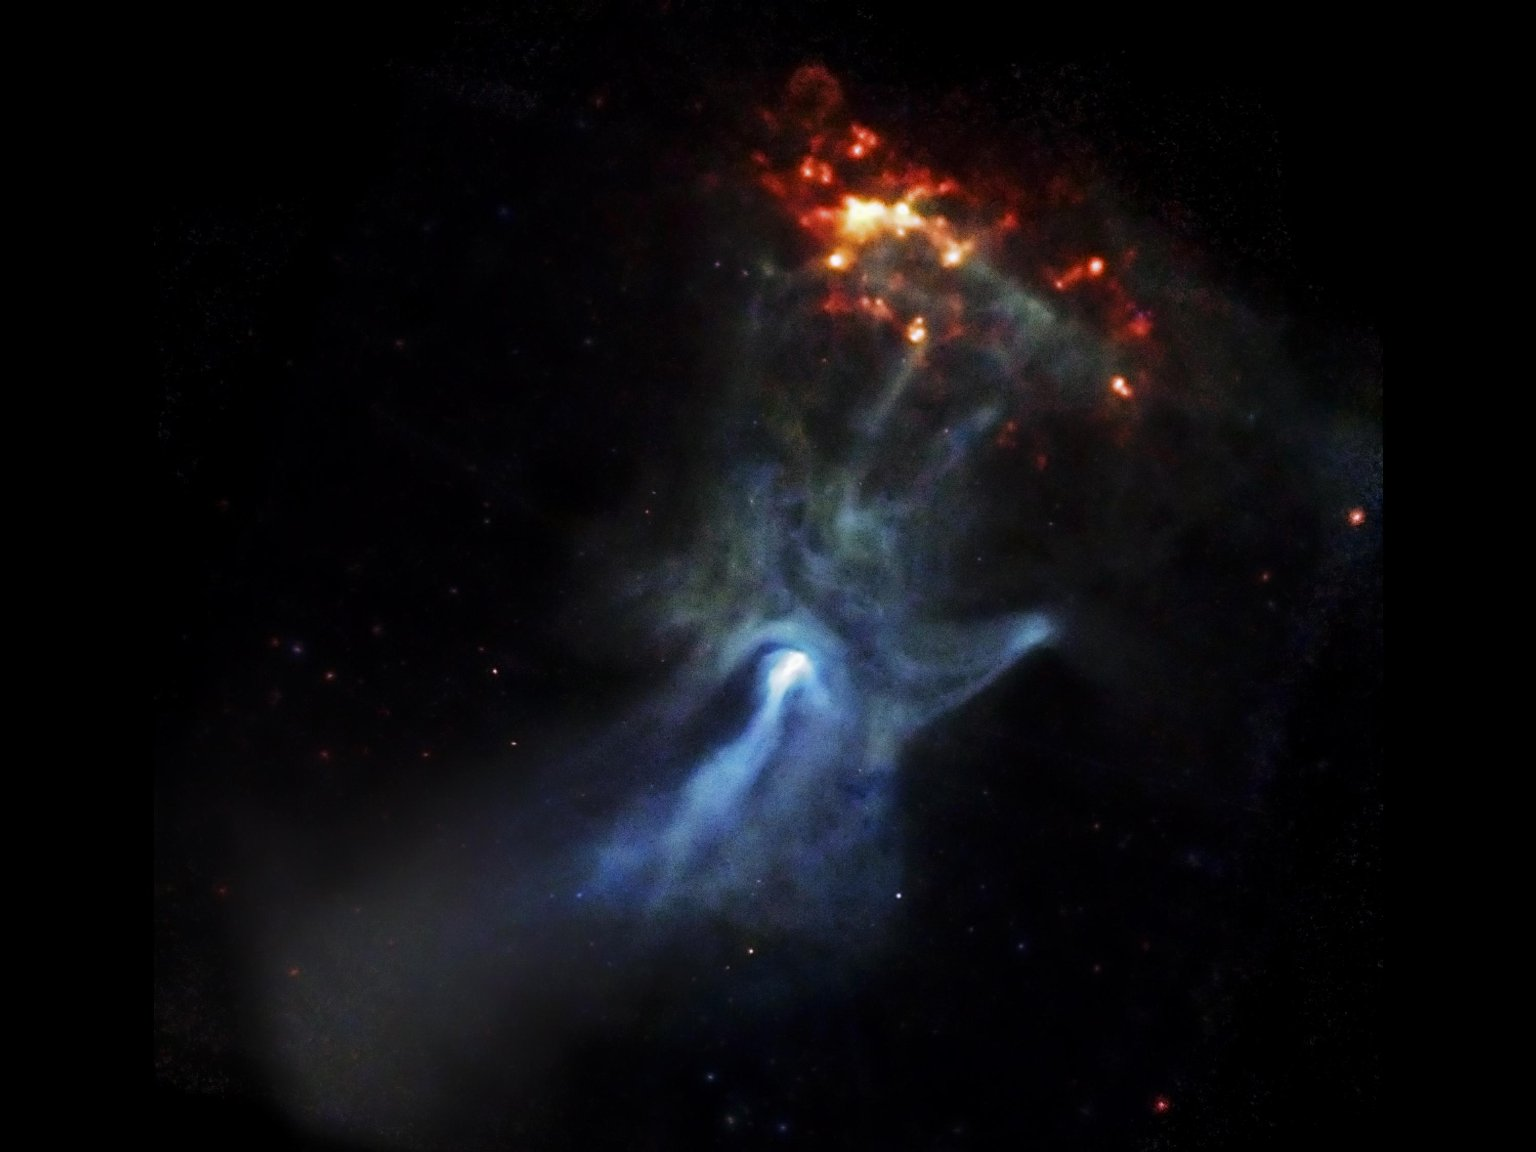 A Young Pulsar Shows Its Hand